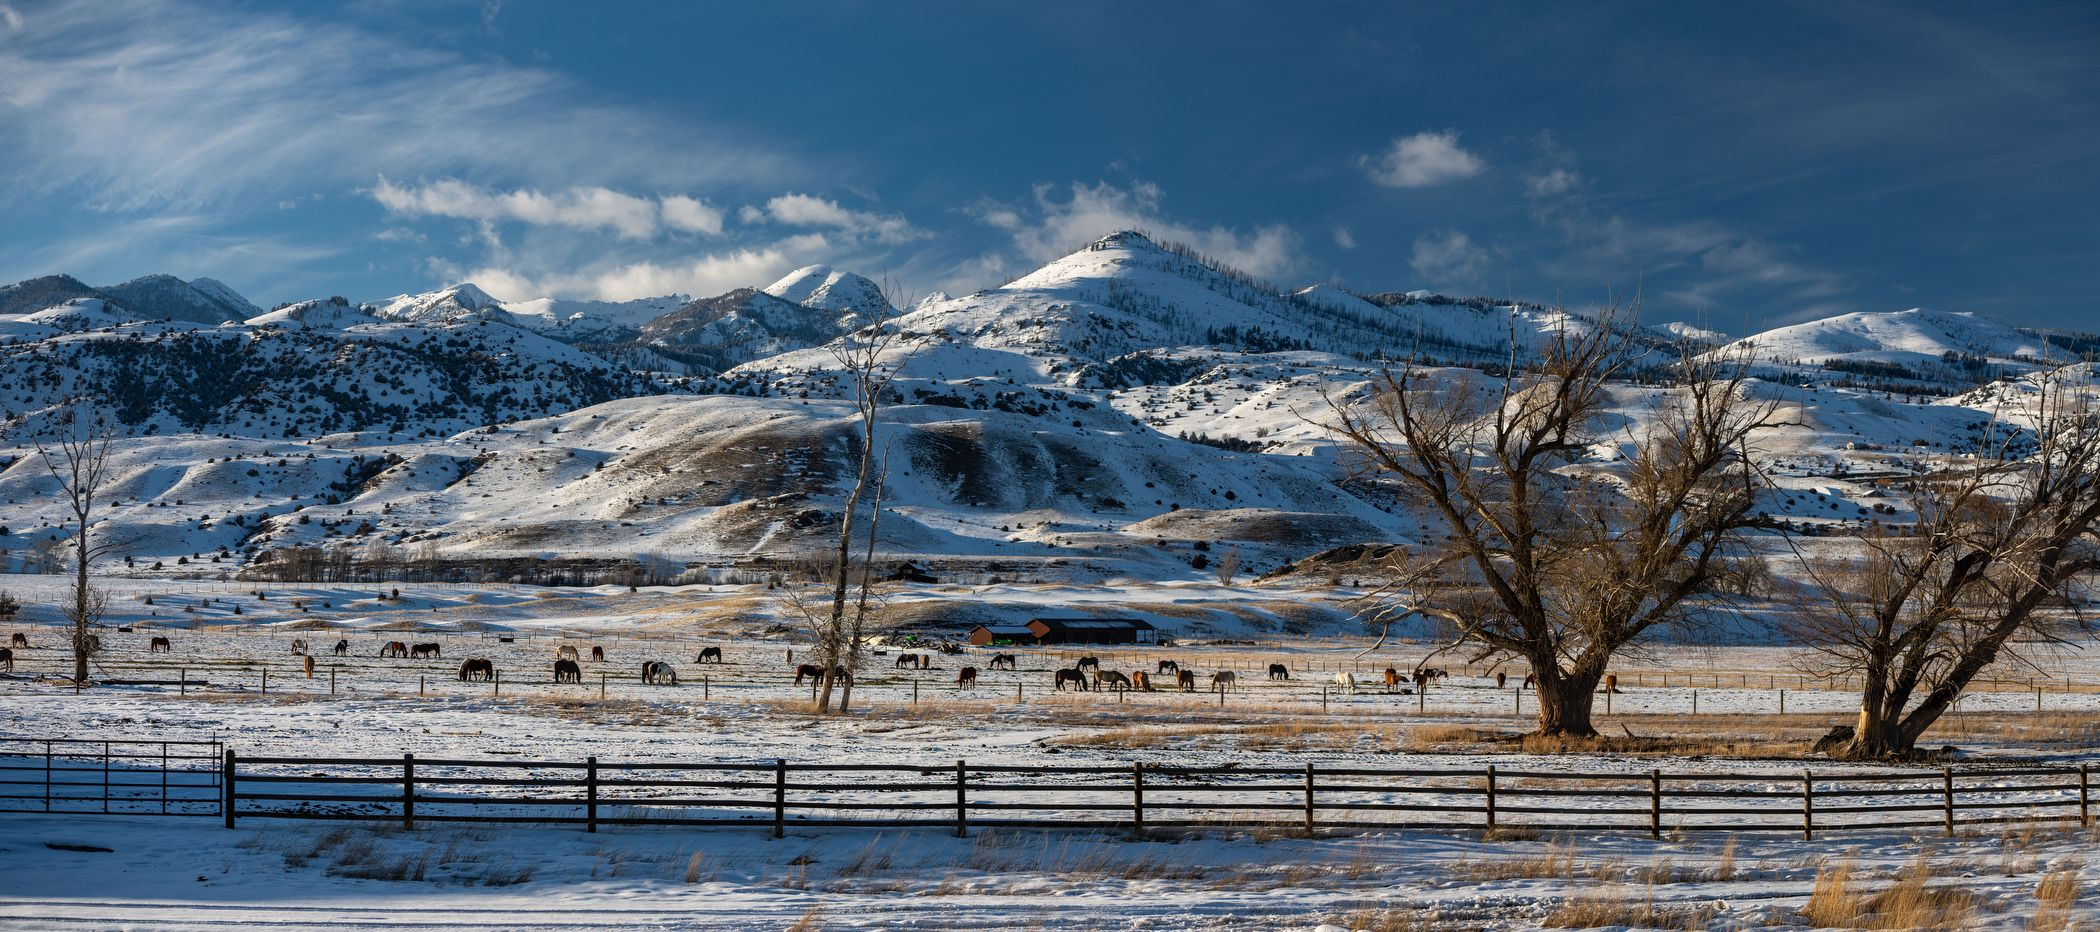 Winter landscape in the Rockies